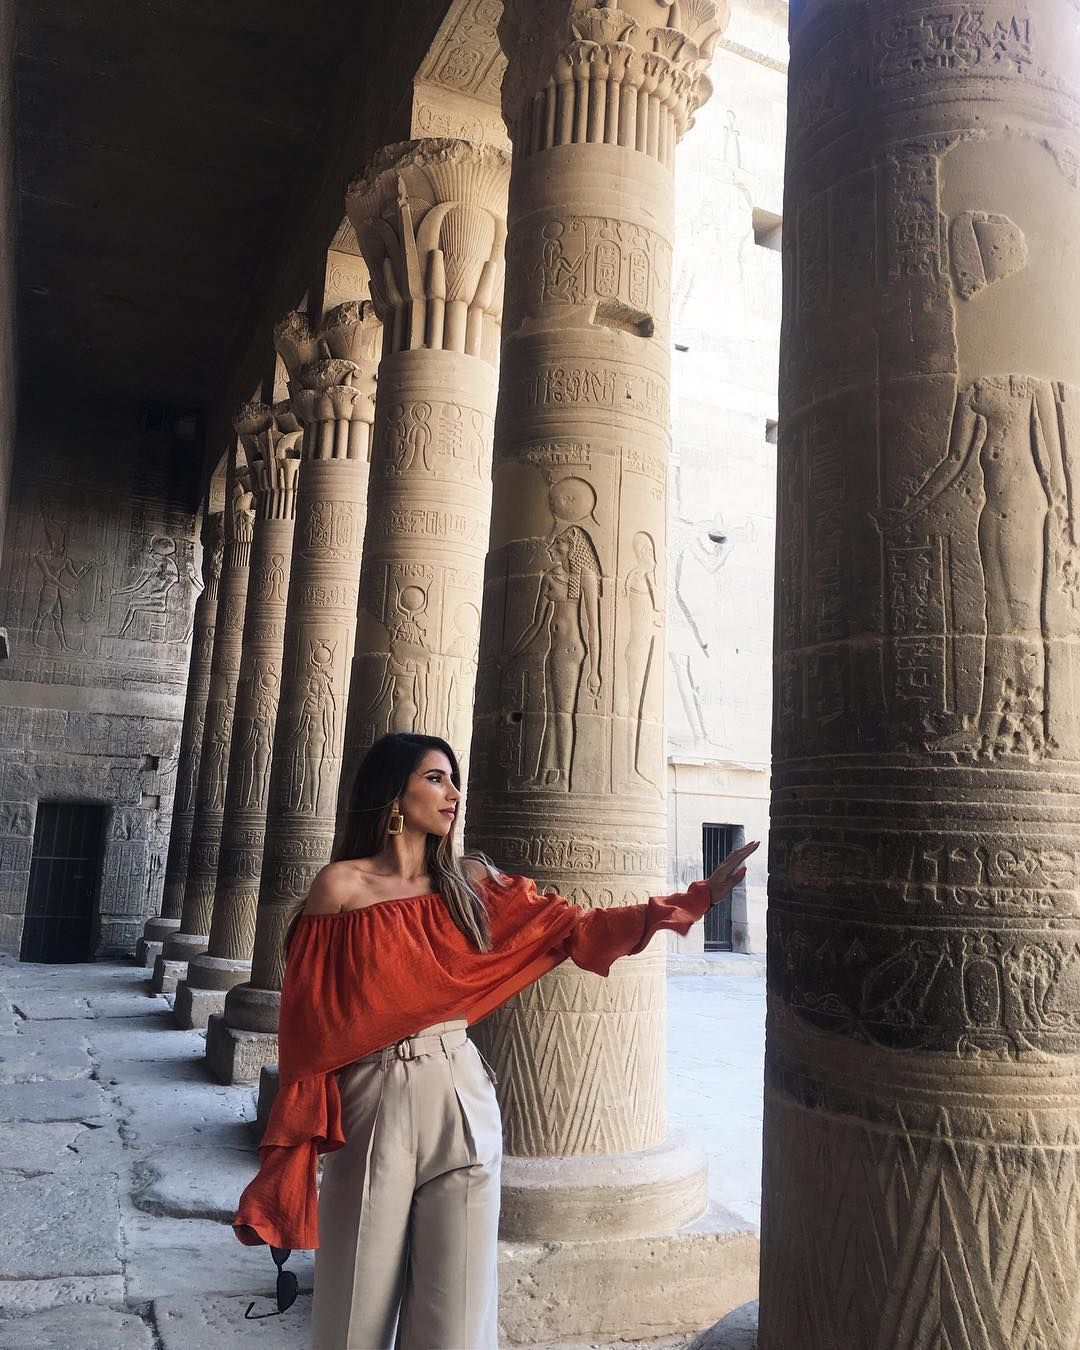 Cairo And Nile Cruise Package 8 Days Egypt Tour Cairo And Nile Cruise Holidays Egypt Tours Egypt Travel Visit Egypt